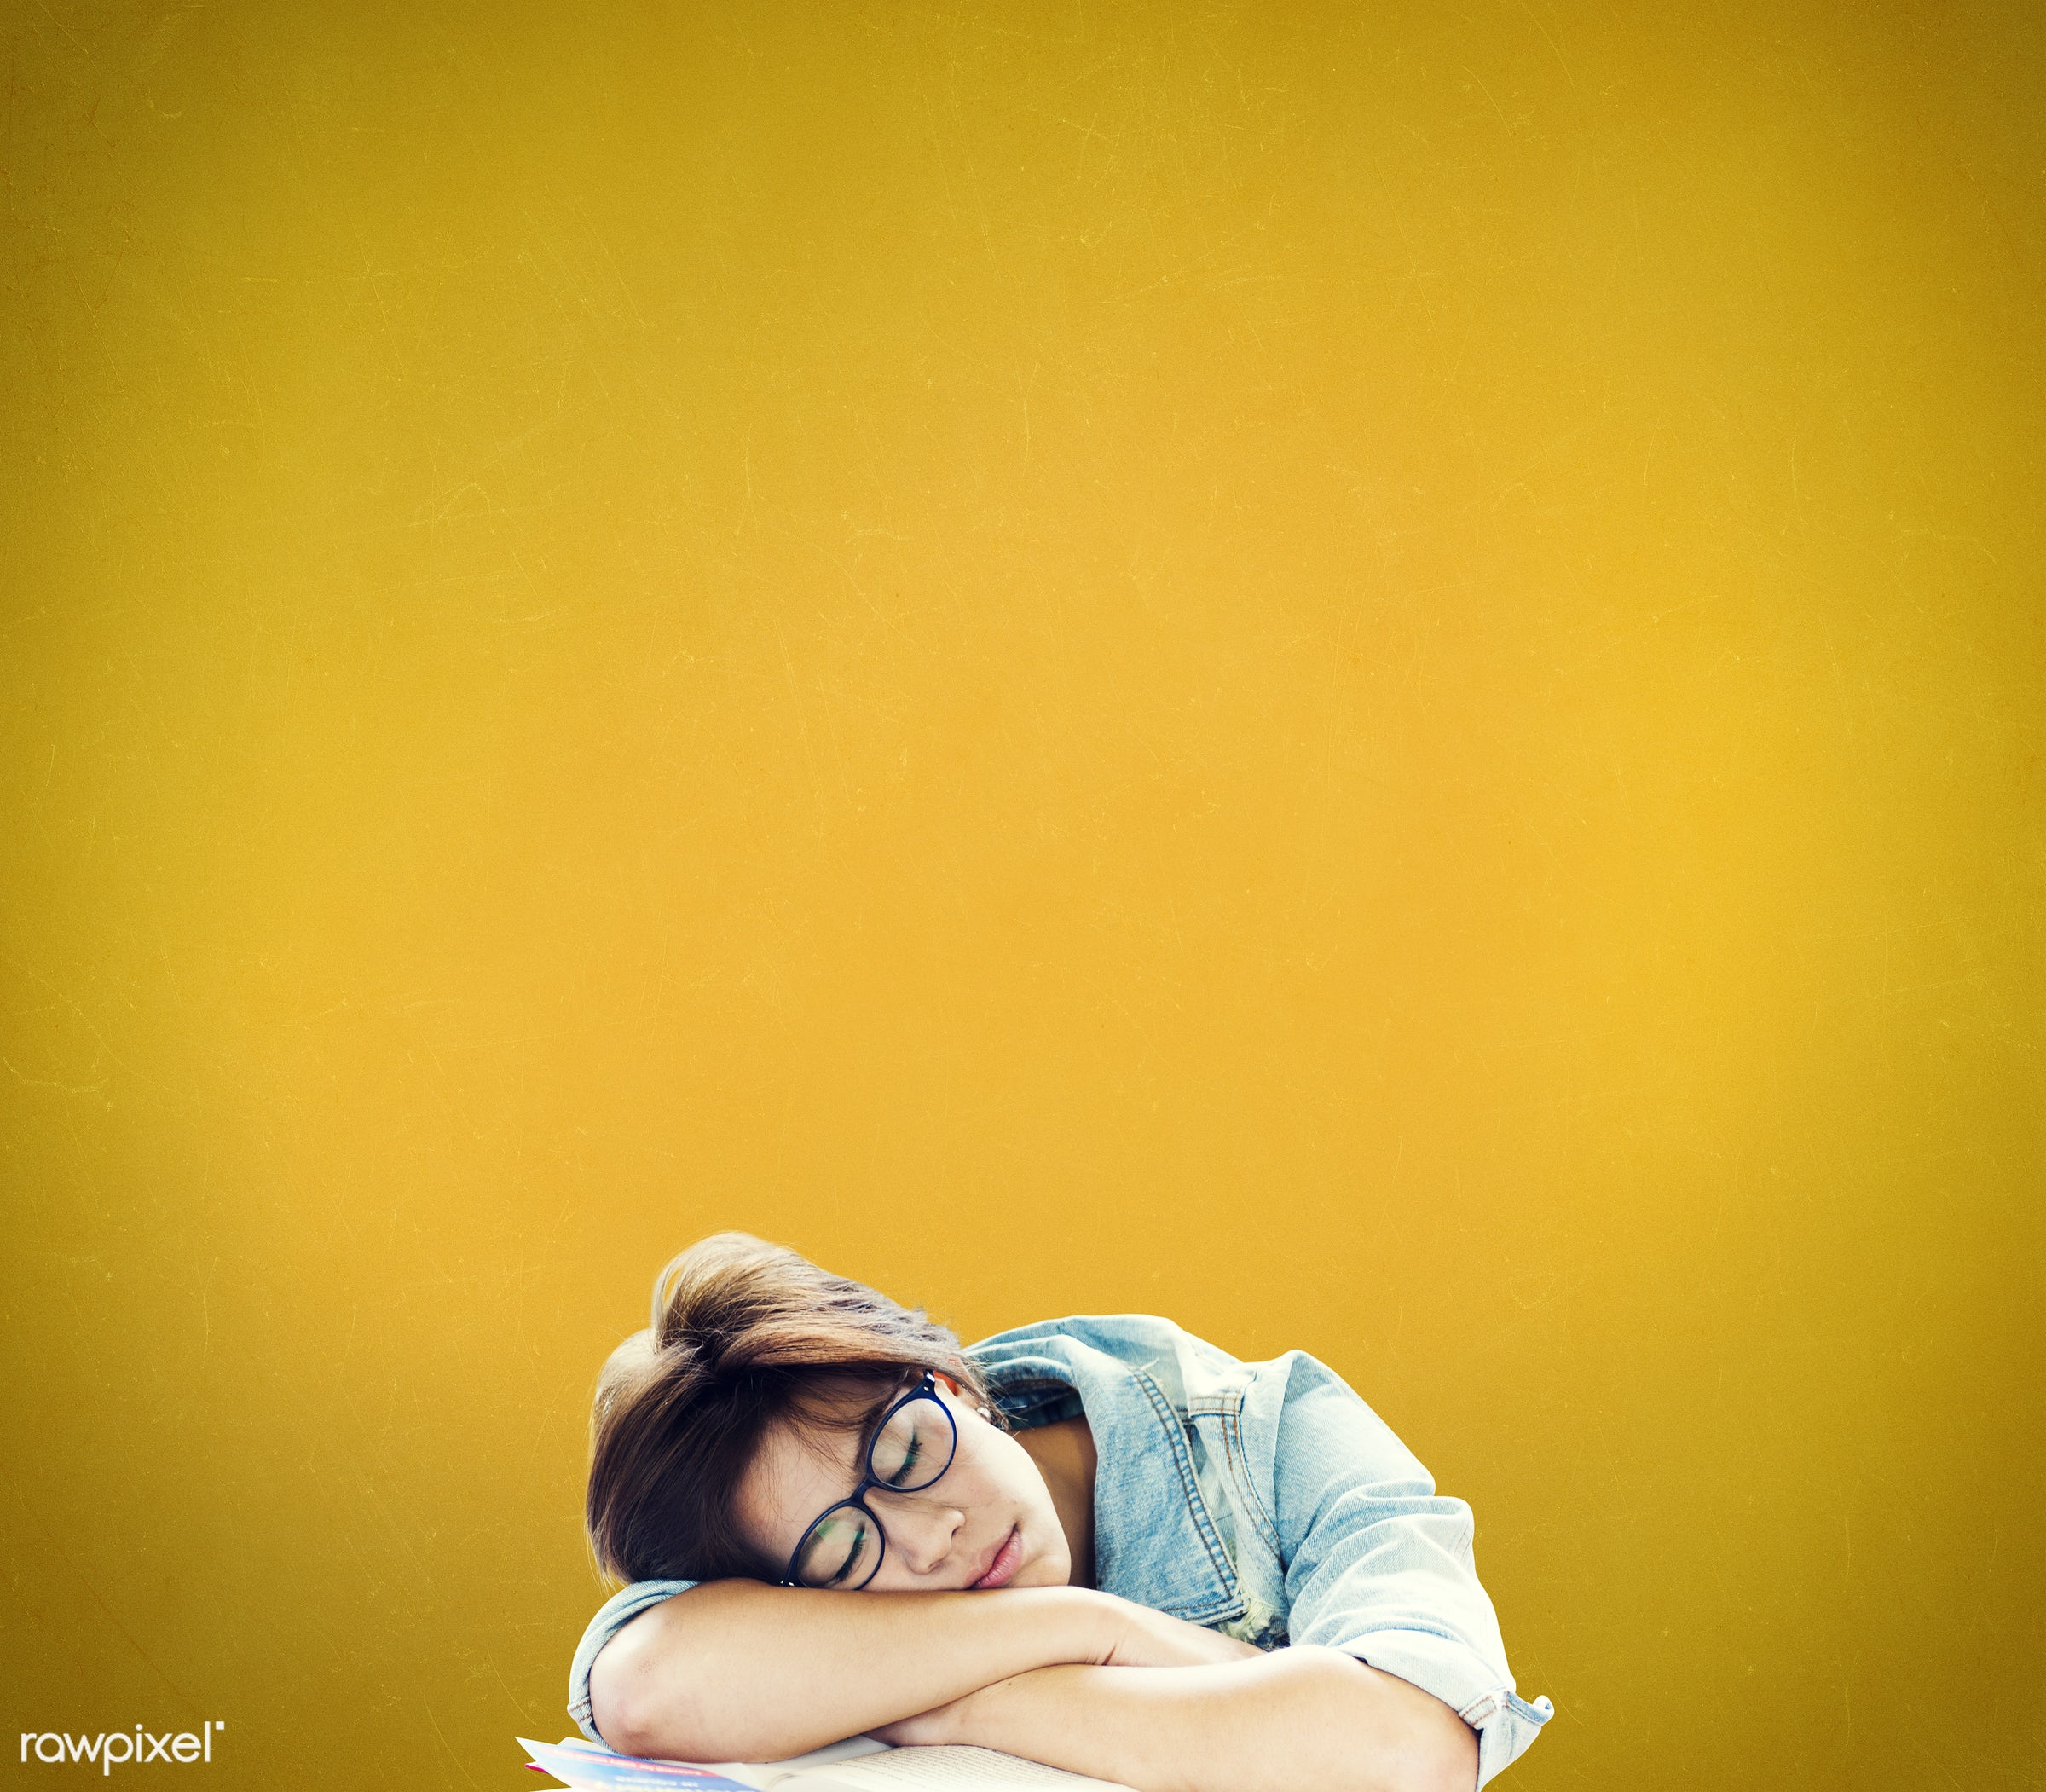 abstract, asleep, blank, bored, break, calm, casual, concept, copy space, design, hipster, idea, nap, no energy, plain,...